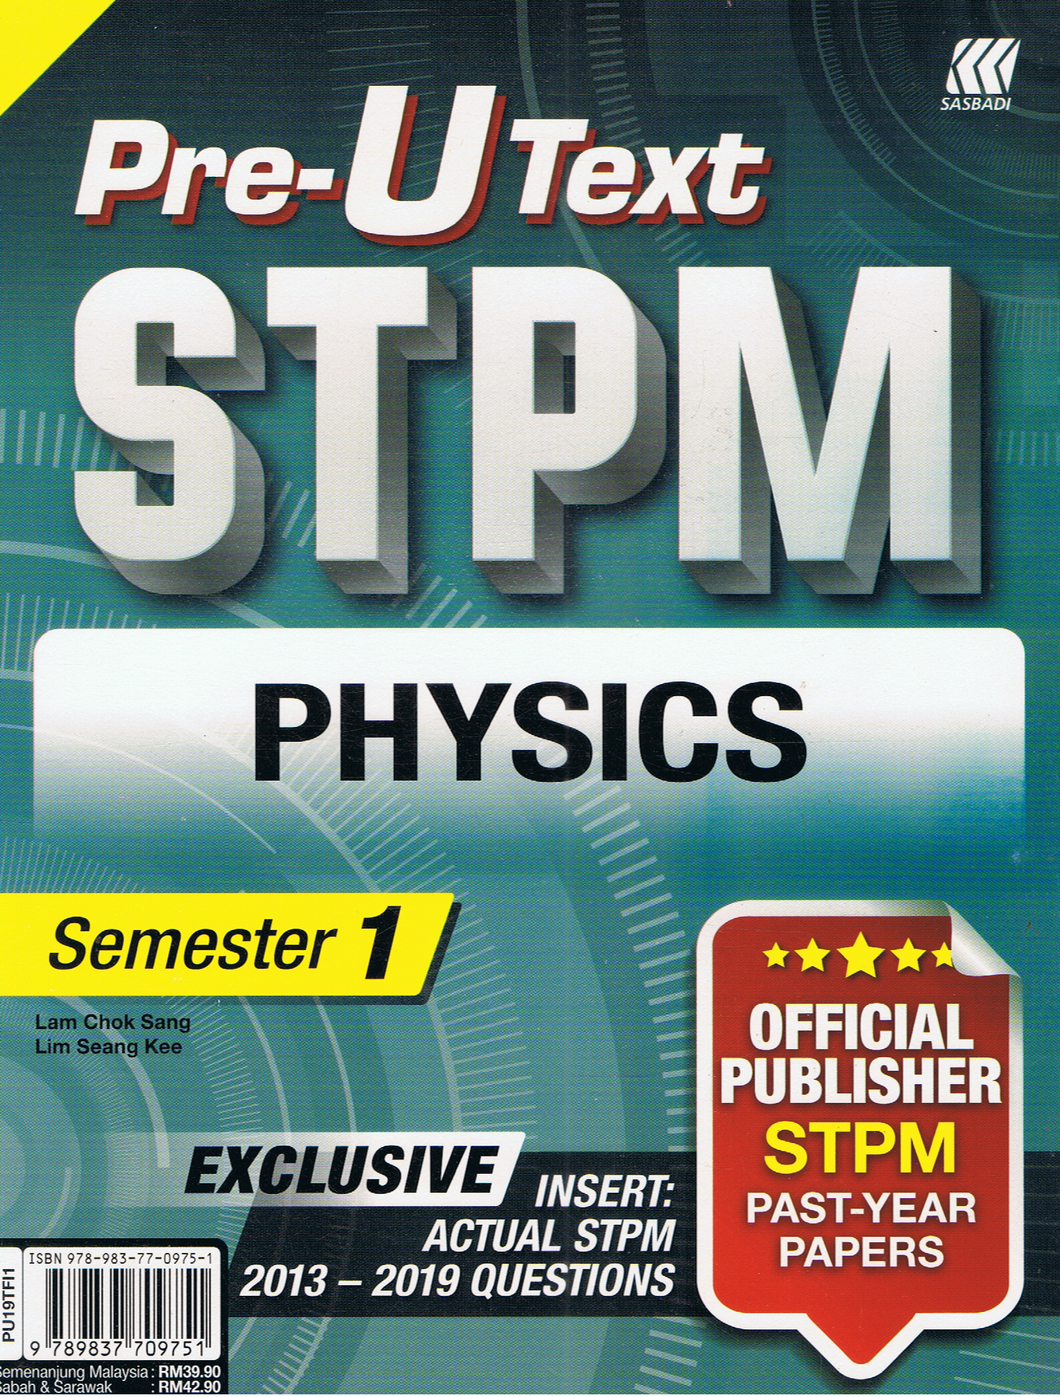 Pre-U Text STPM: Physics Semester 1